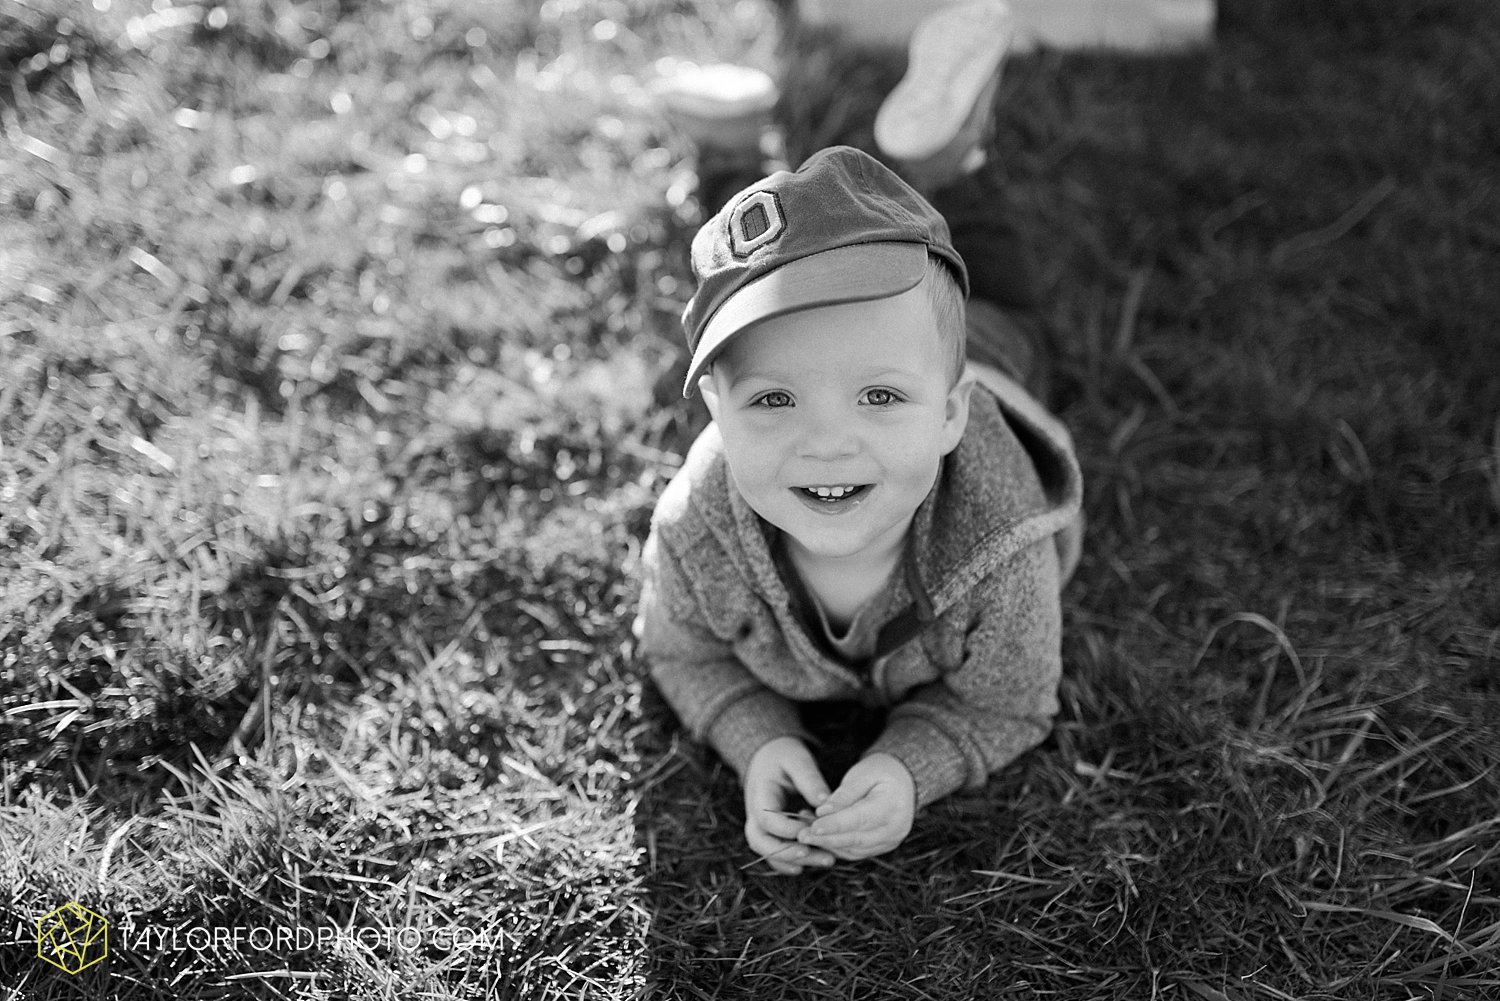 nashville_tennessee_taylor_ford_photography_lifestyle_newborn_family_photographer_4698.jpg